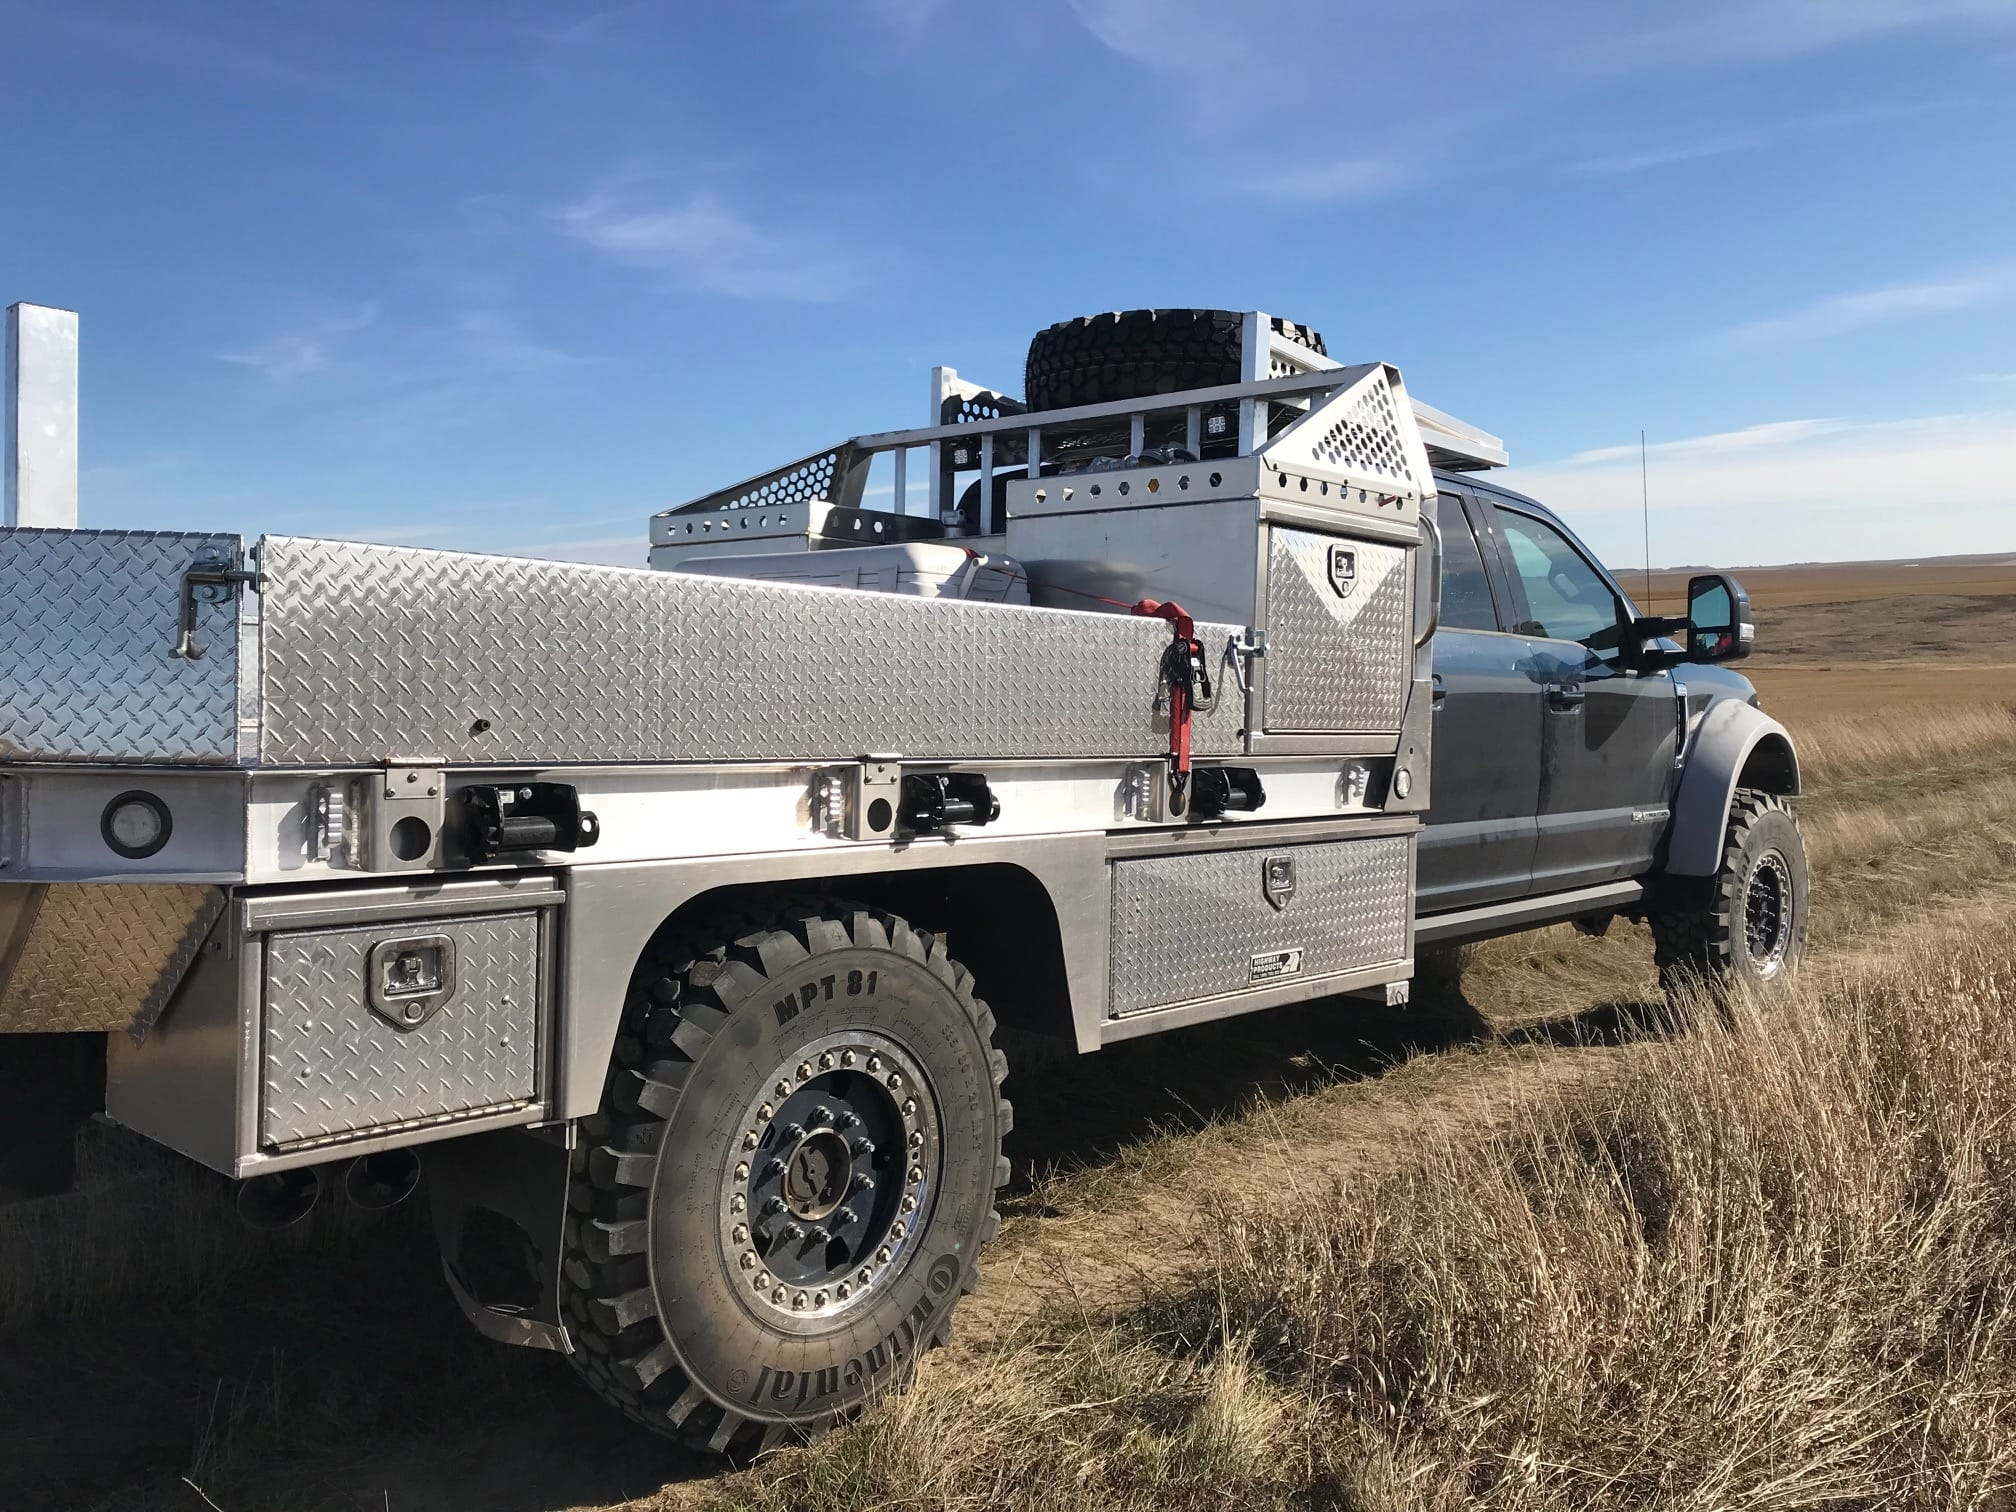 Grey Brush truck